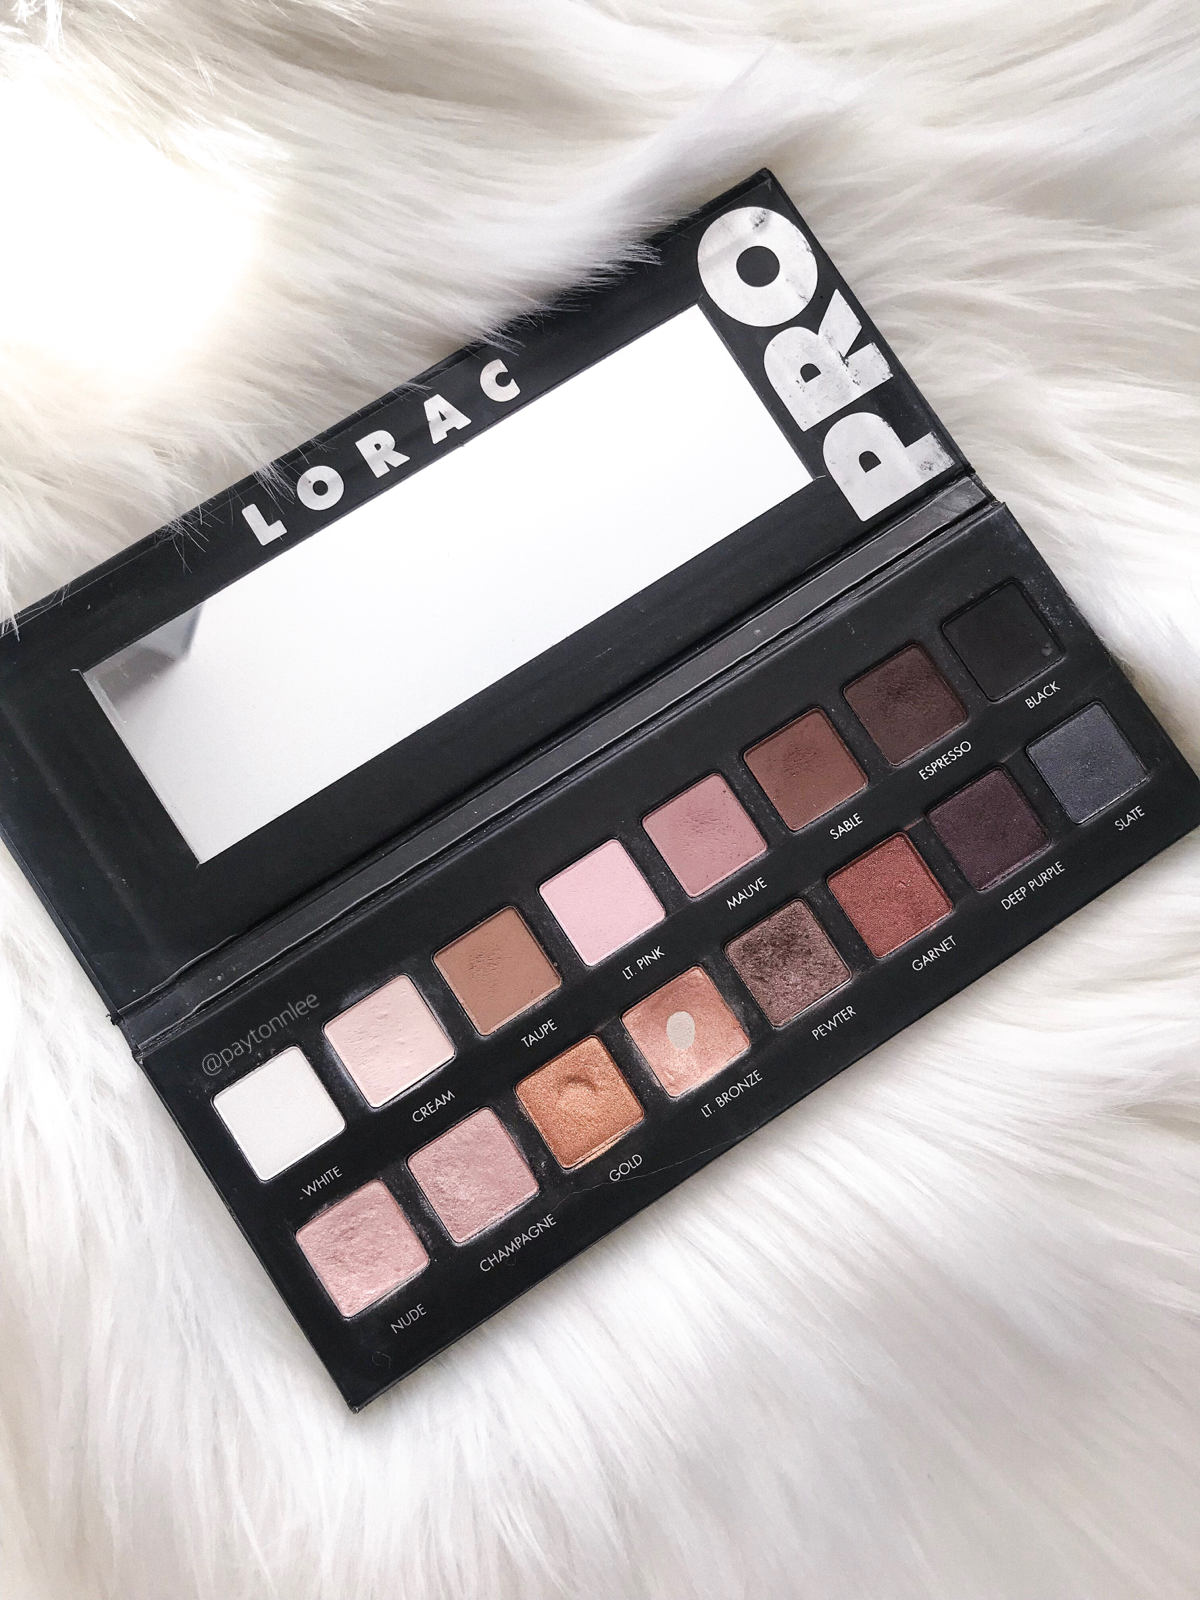 A review of the best neutral eyeshadow palettes including